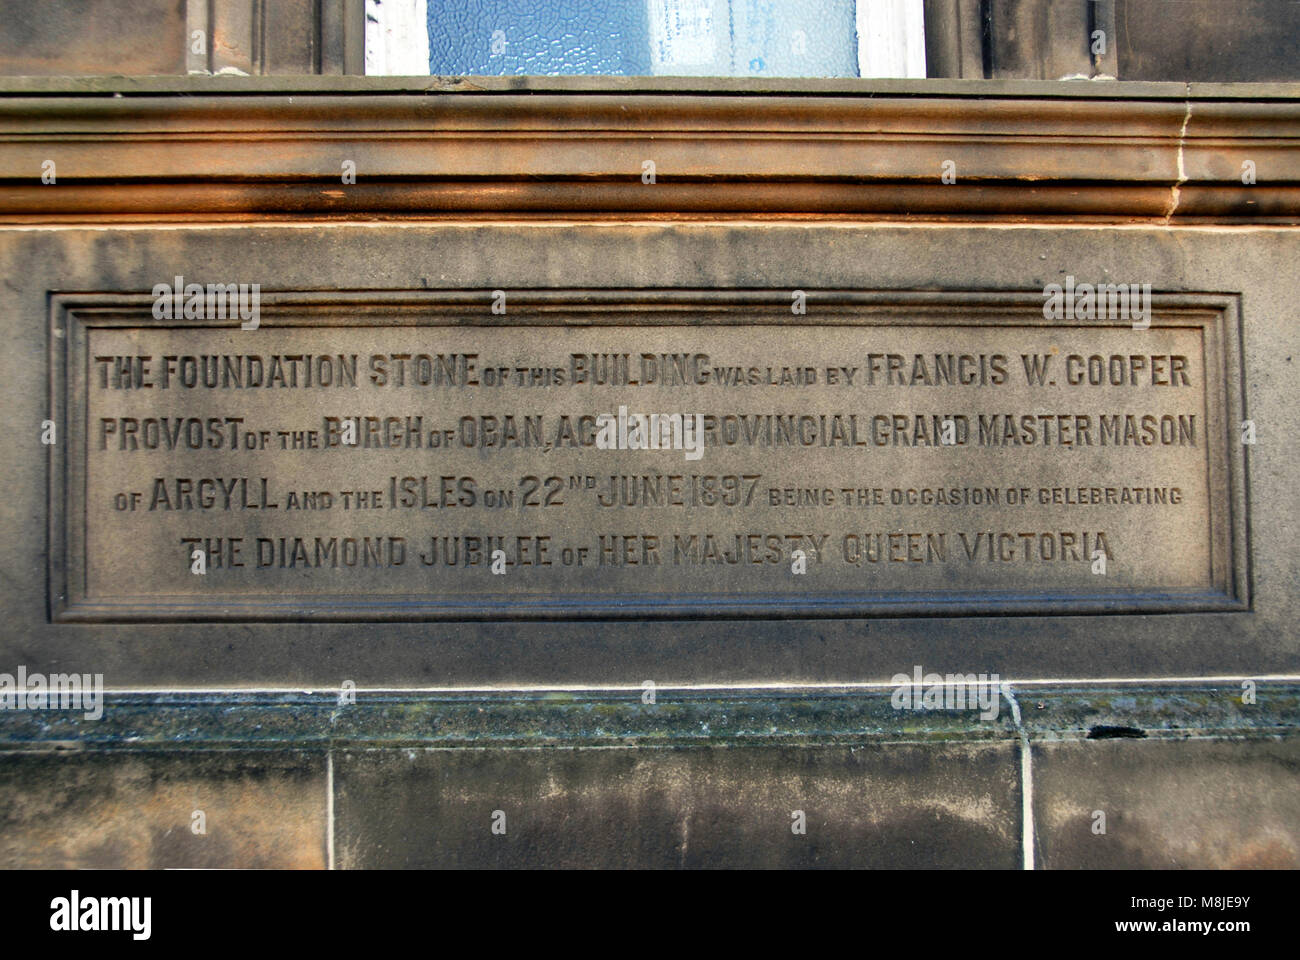 Foundation stone on building in Oban, Scotland, celebrating the diamond jubilee of Queen Victoria - Stock Image